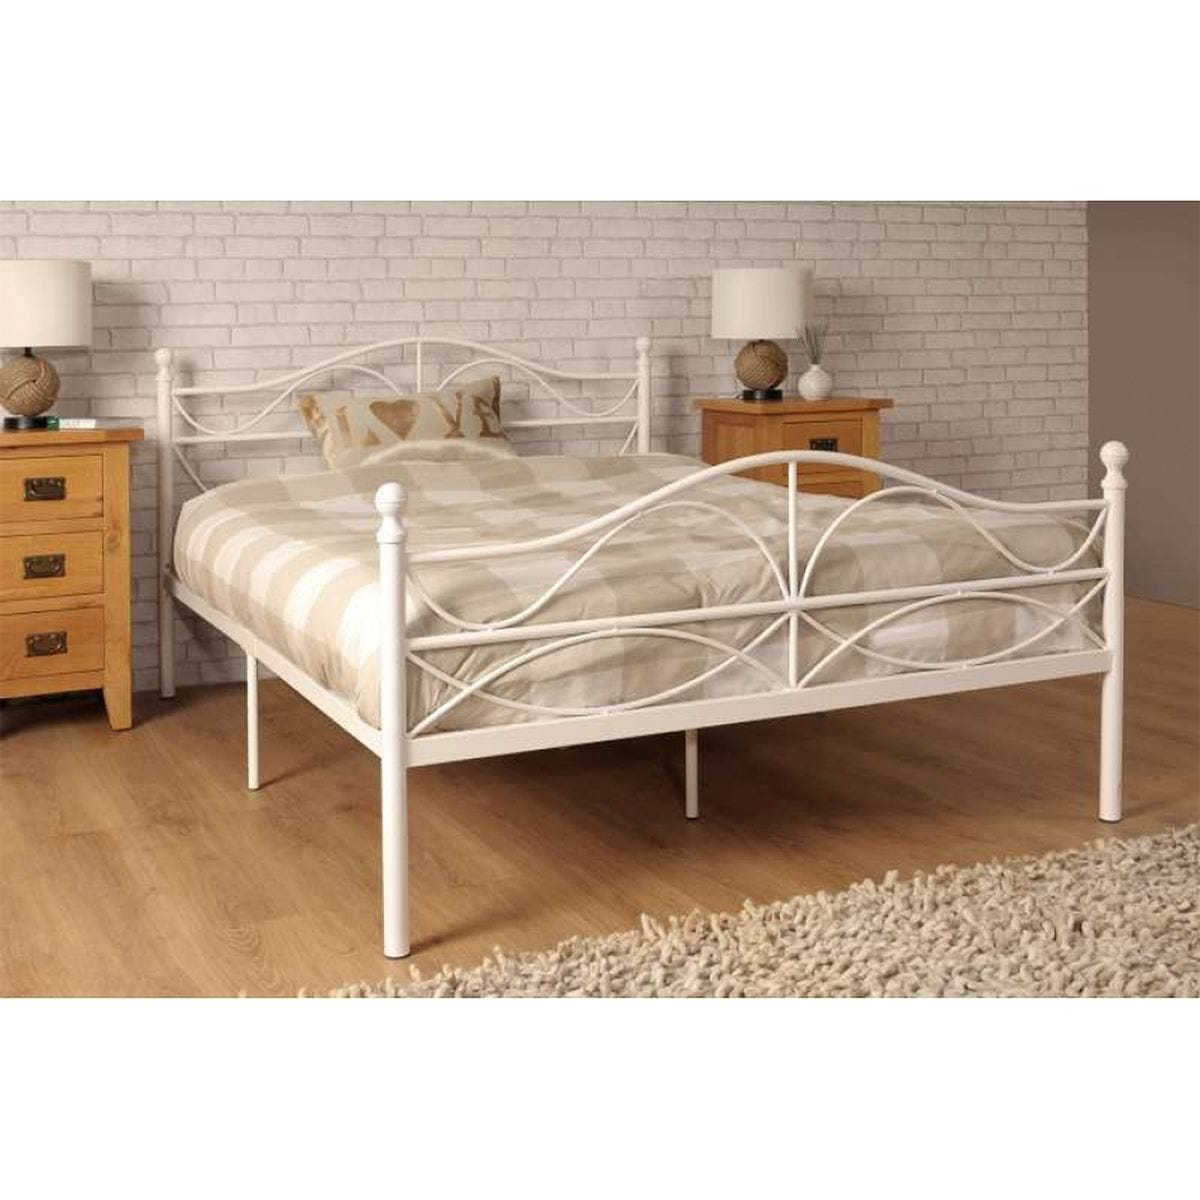 Willow Bed Frame - White